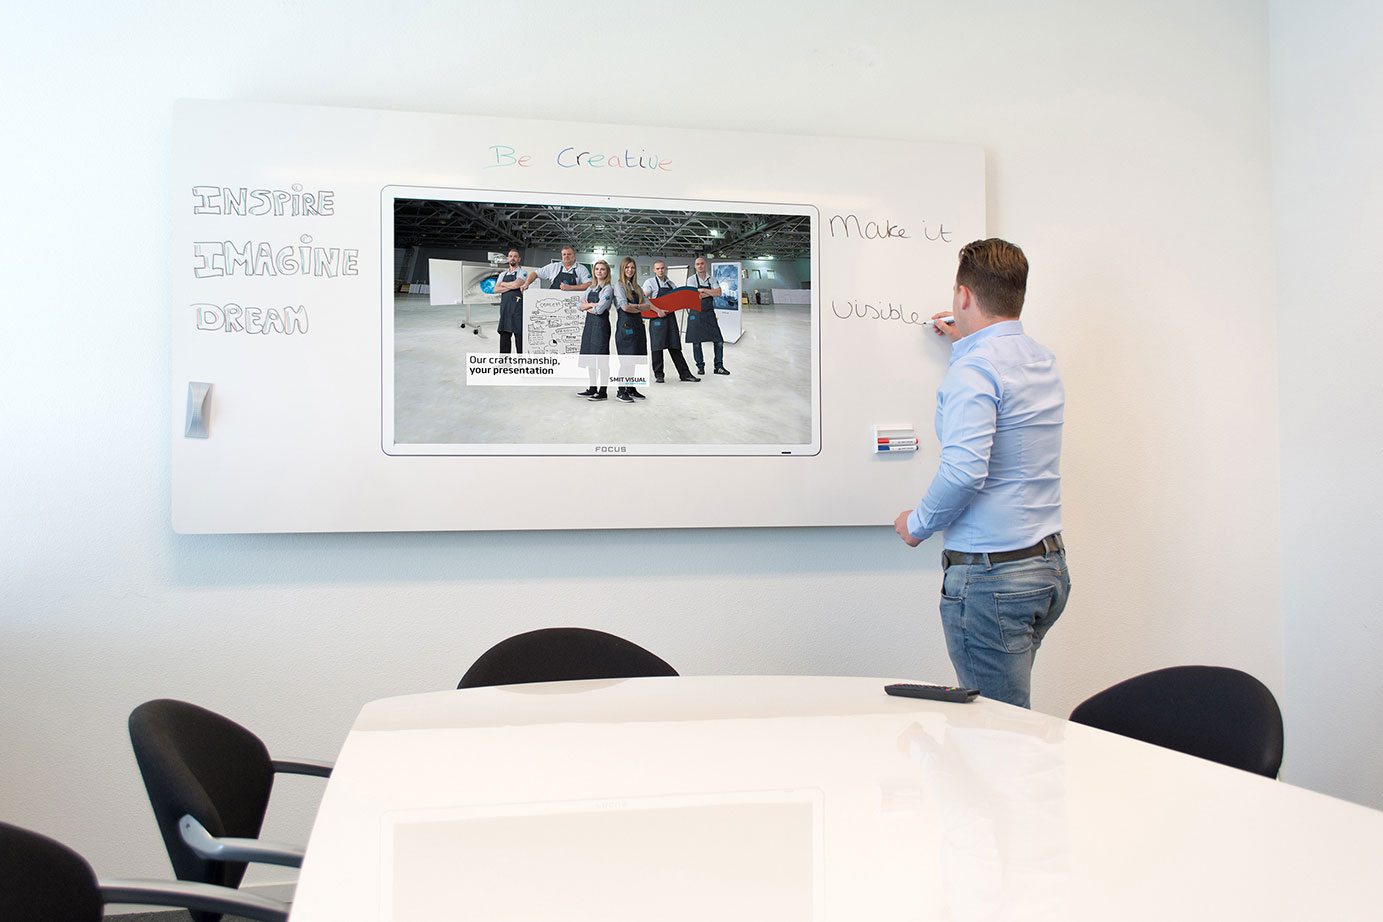 Chameleon Surround - A digital screen is the optimum medium for delivering a digital presentation. However, if new ideas and comments are raised during the presentation, a whiteboard is useful. Chameleon Surround is a whiteboard frame around a touchscreen, developed with design in mind. The best of both worlds in one solution.